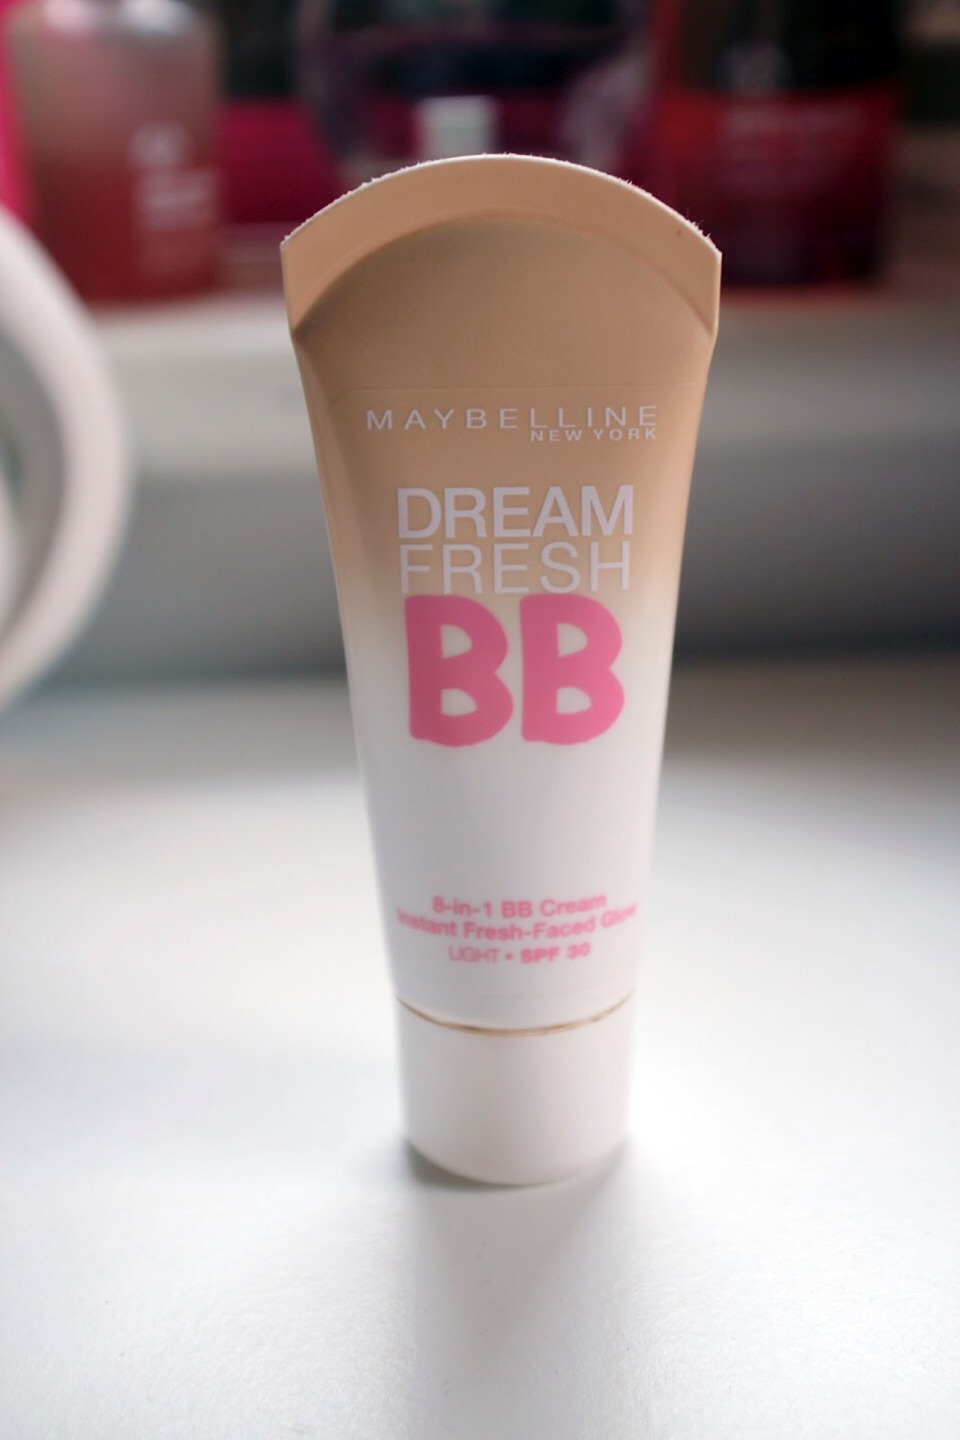 Bb cream is not only great because it moisturises and gives coverage and colour but if your wearing a dress and you have a pesky bruise you can put some bb cream over the bruise to cover/hide it !